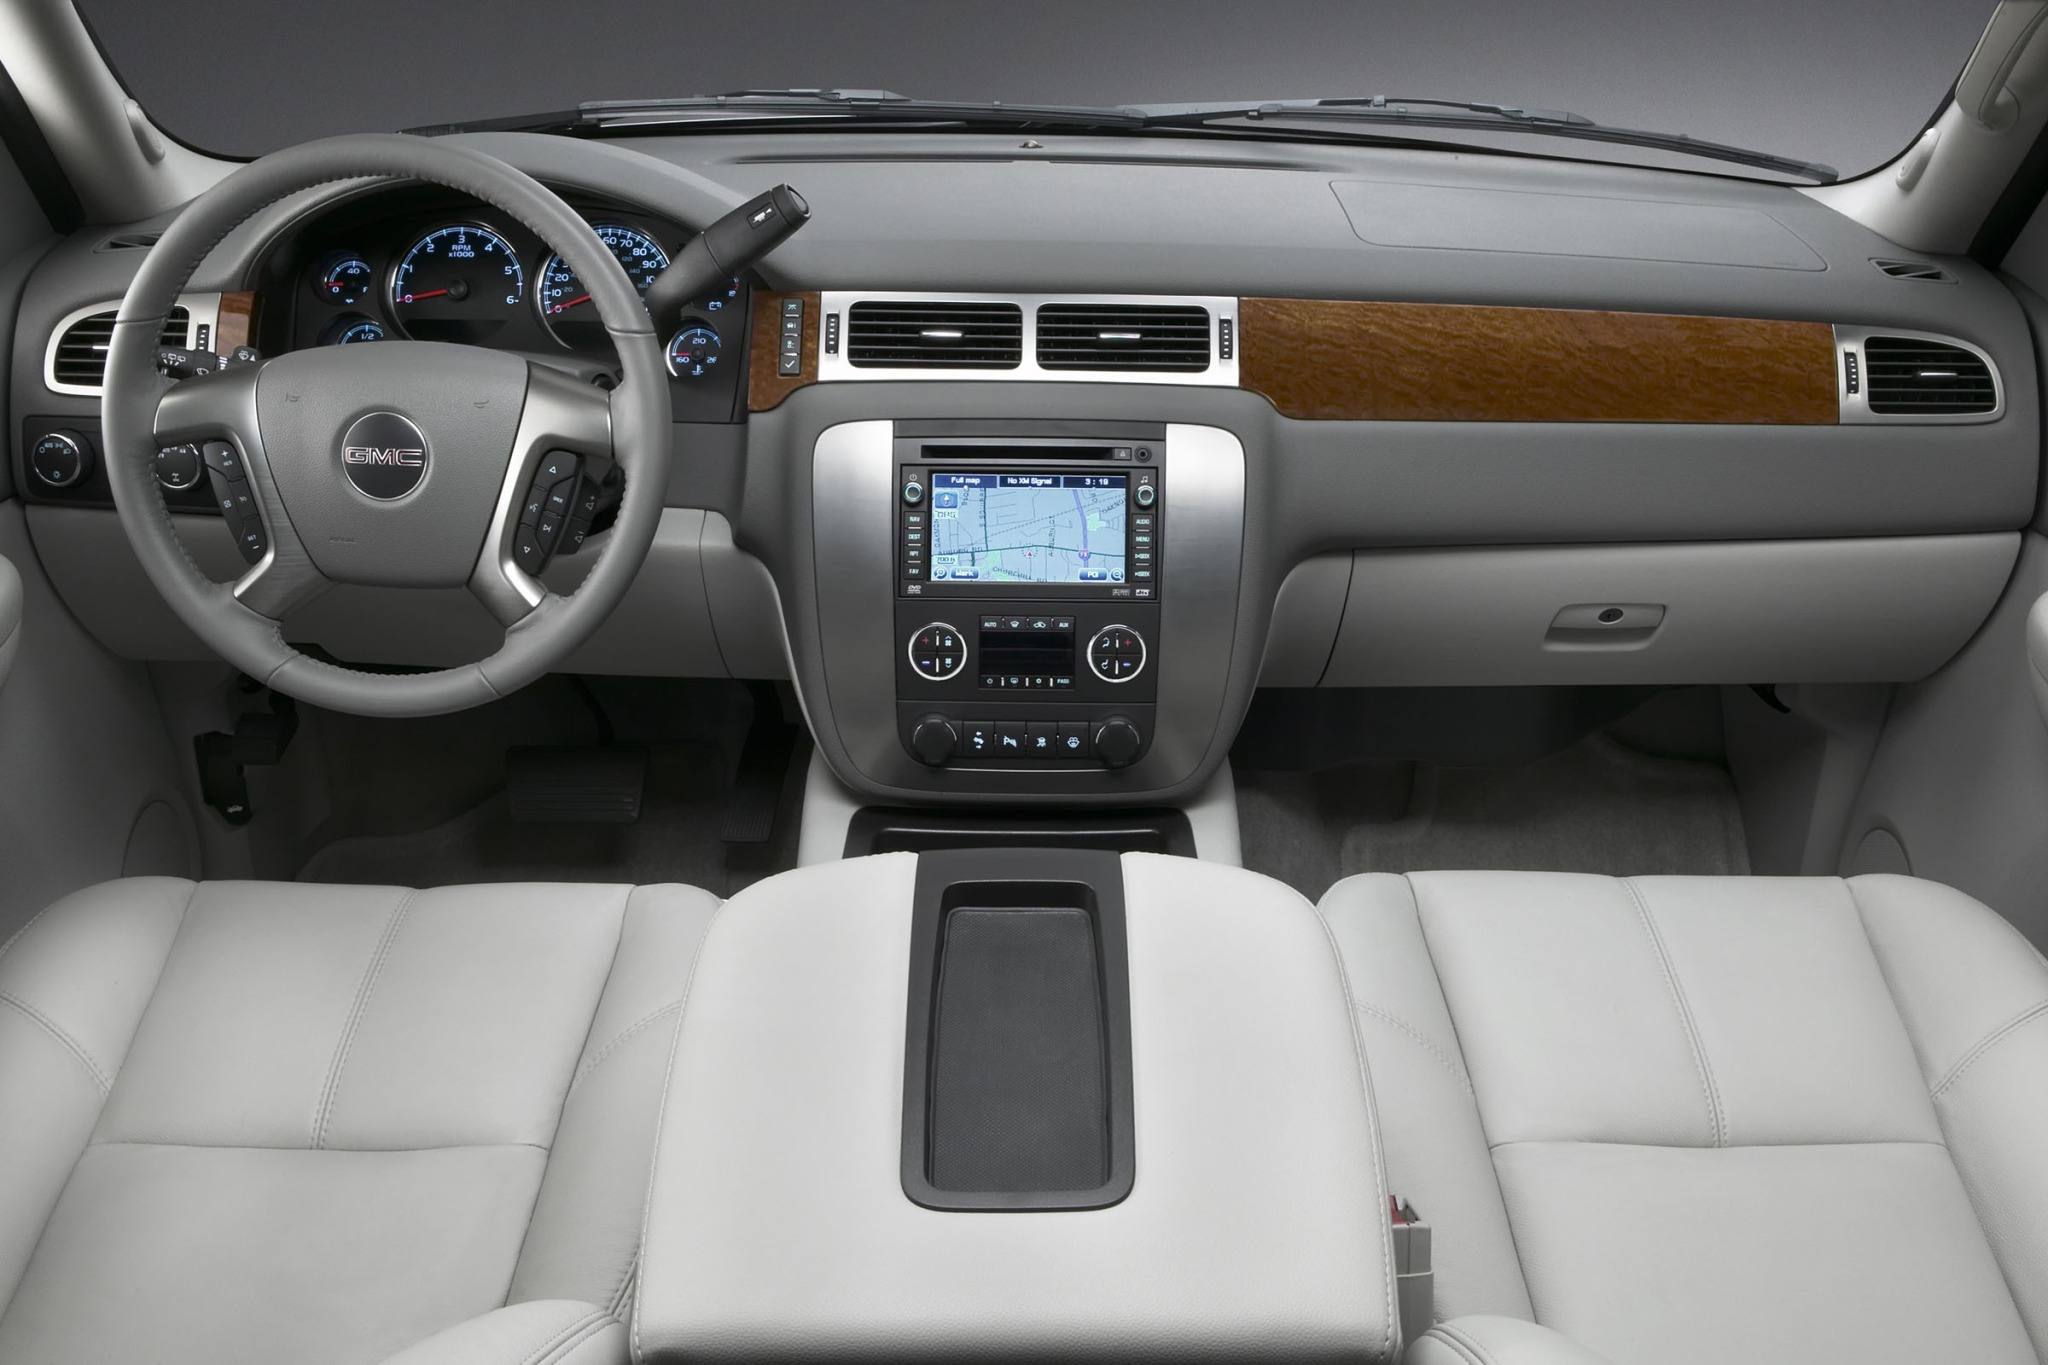 2013 GMC Yukon XL SLT 150 interior #6